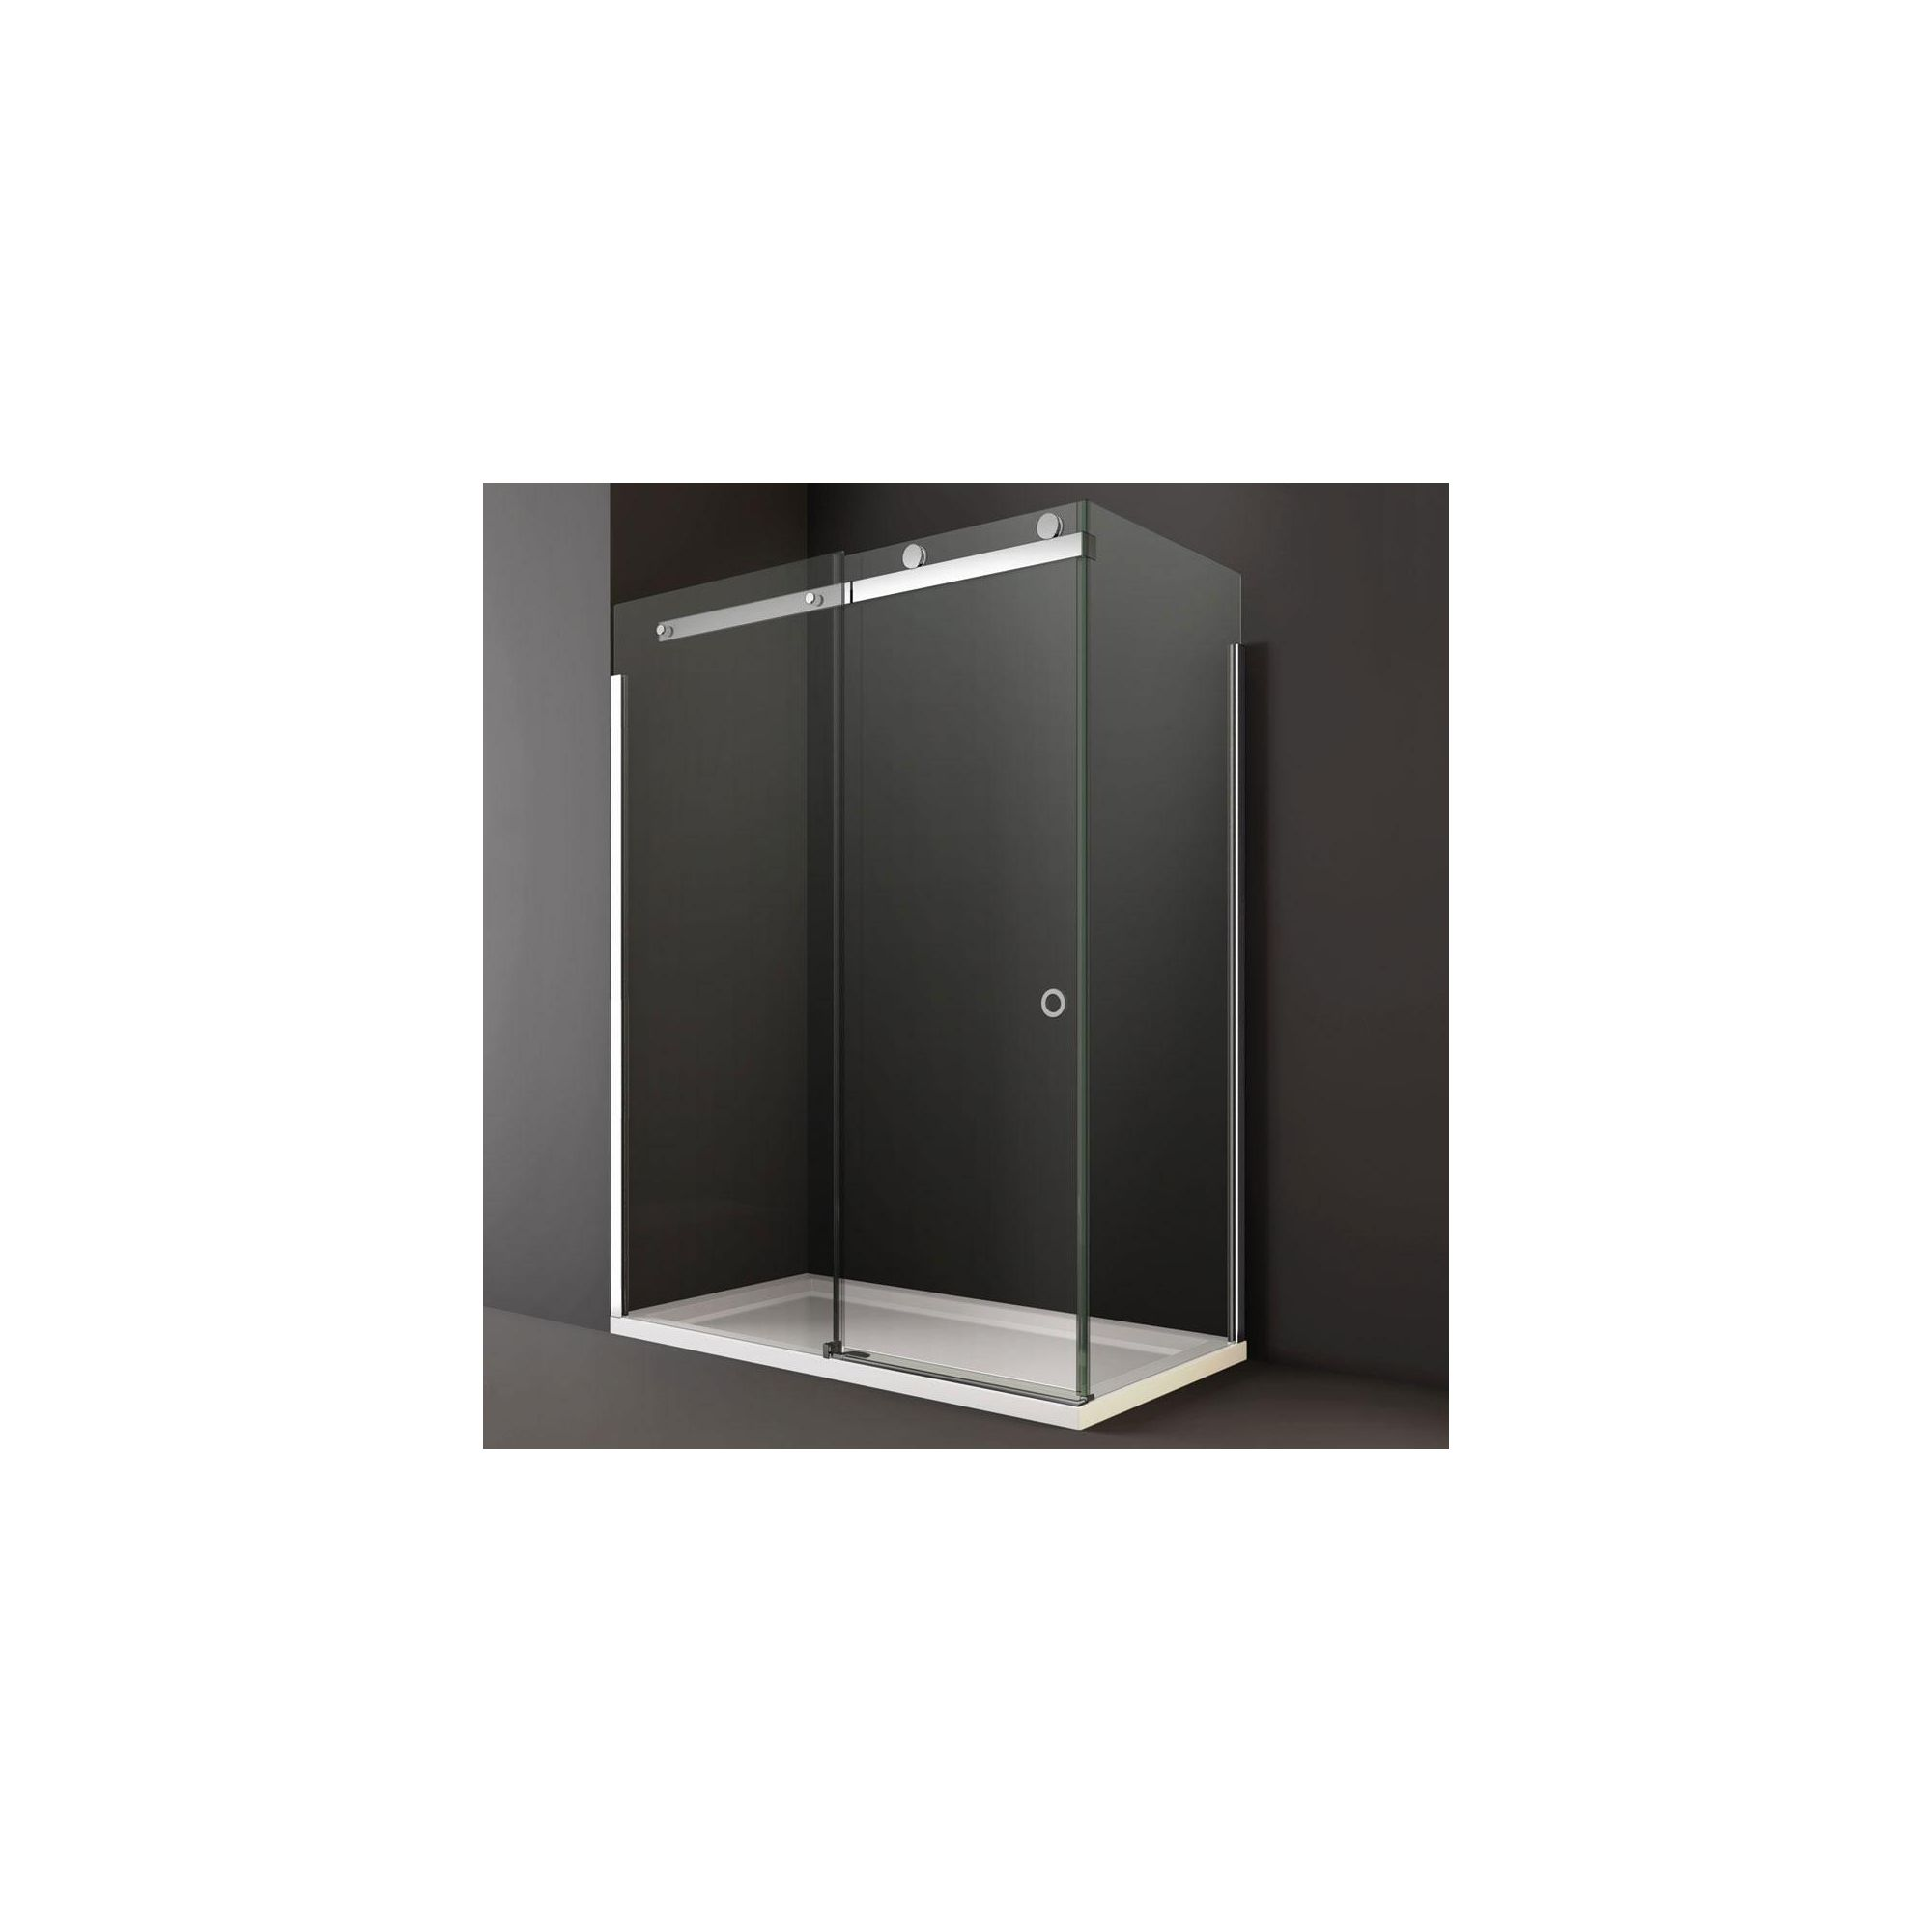 Merlyn Series 10 Sliding Shower Door, 1200mm Wide, 10mm Clear Glass, Left Handed at Tescos Direct